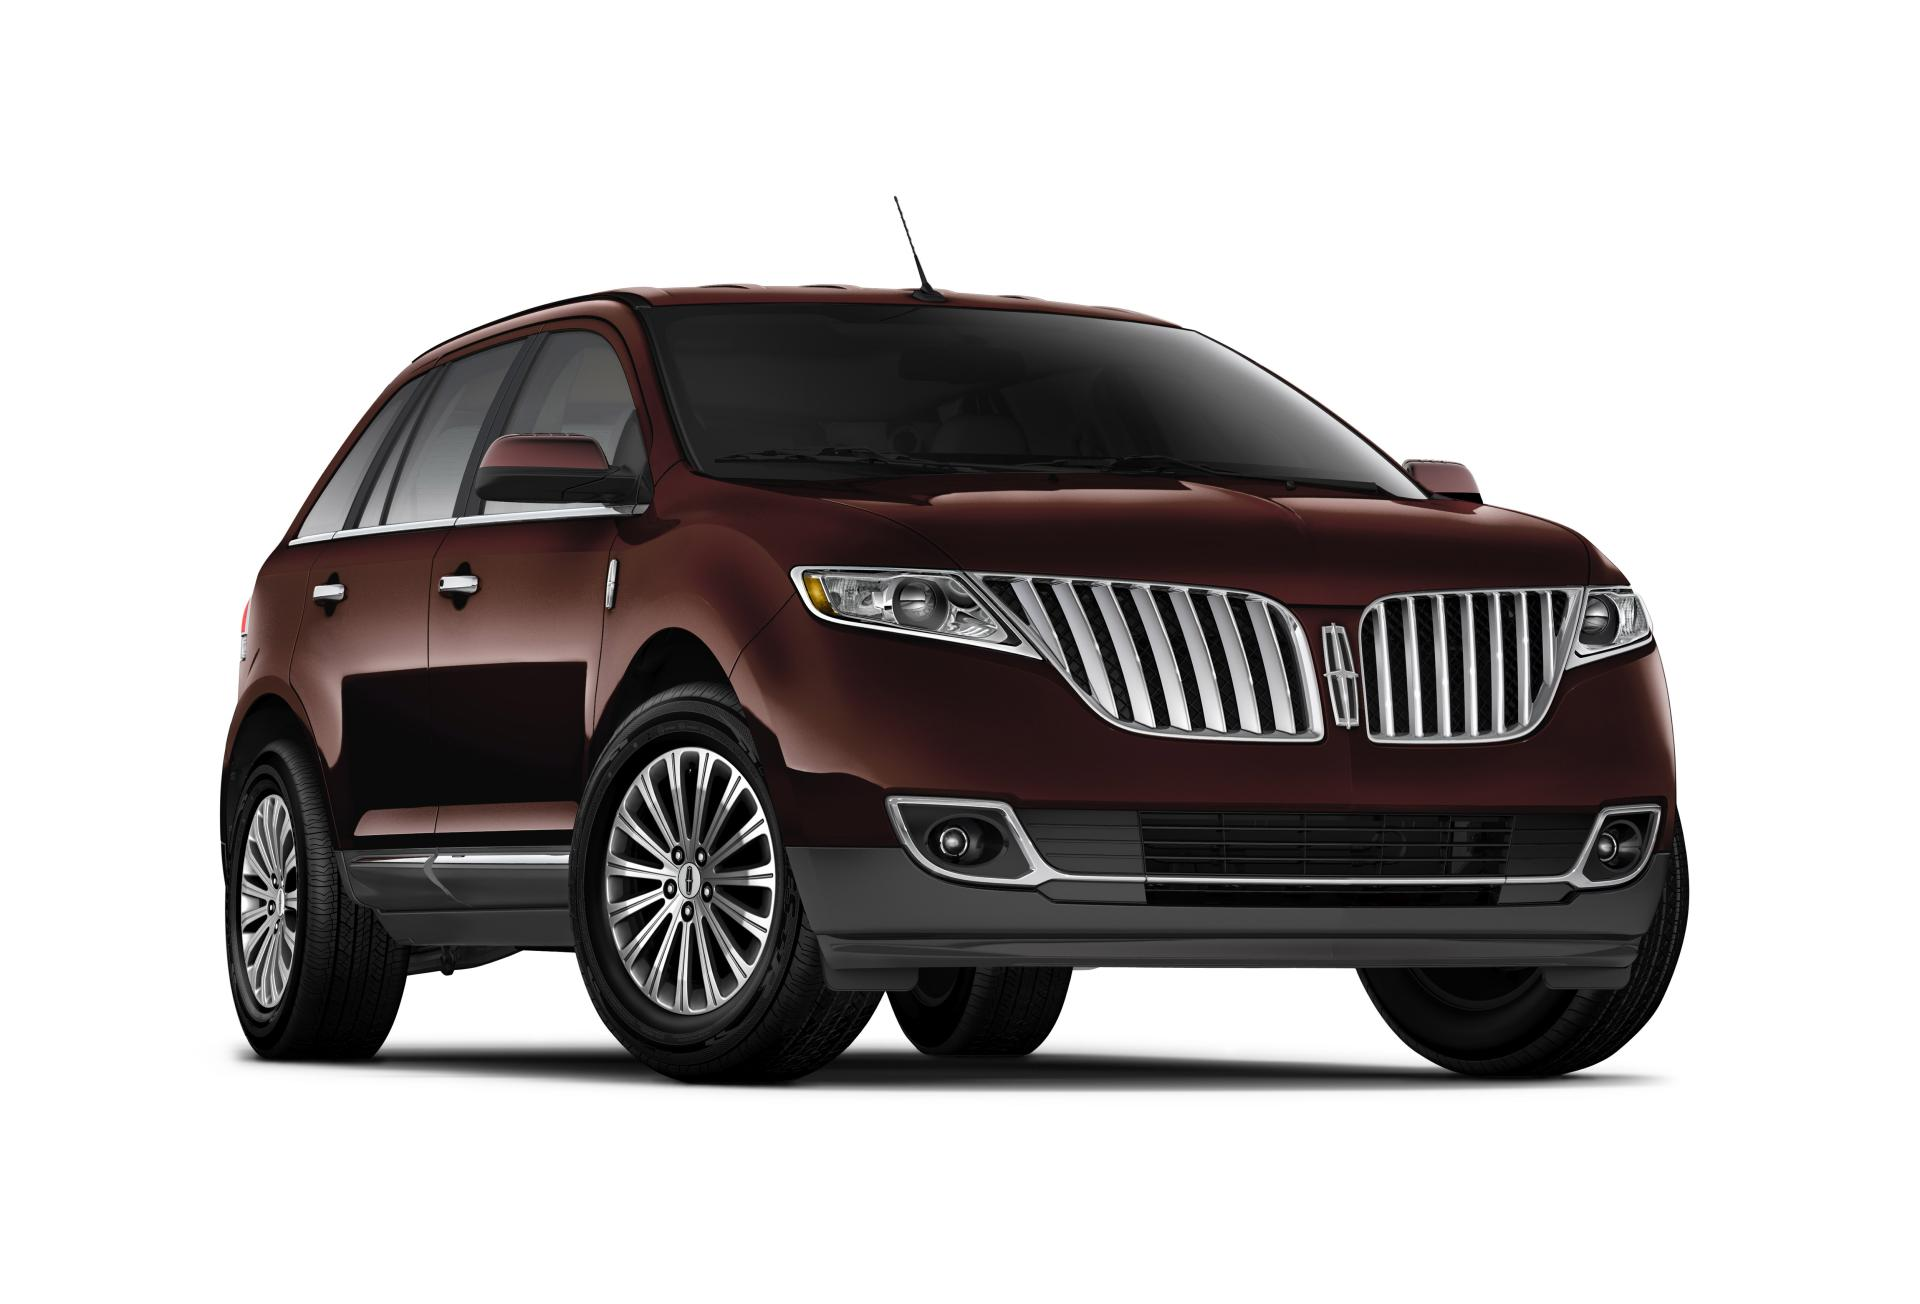 2013 lincoln mkx images photo 2013 lincoln mkx suv image. Black Bedroom Furniture Sets. Home Design Ideas